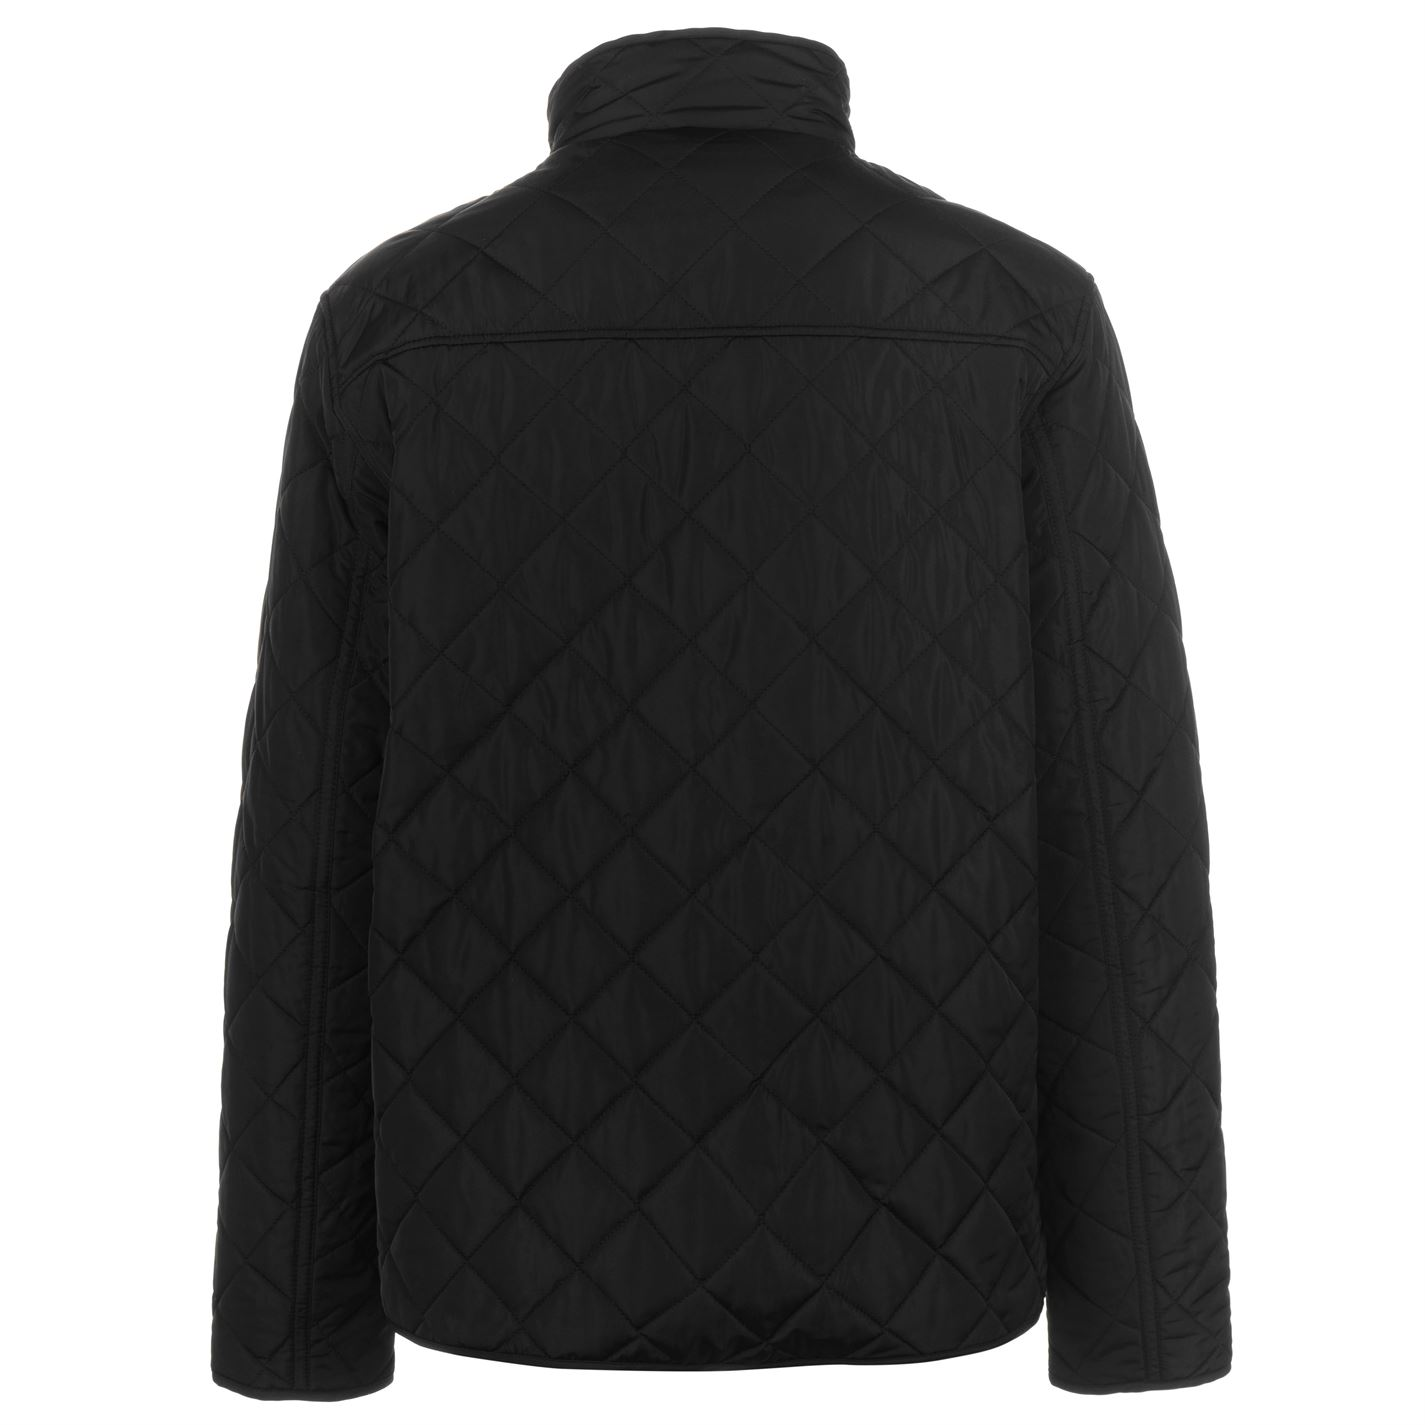 Mens-Firetrap-Kingdom-Jacket-Quilted-Long-Sleeve-New thumbnail 5